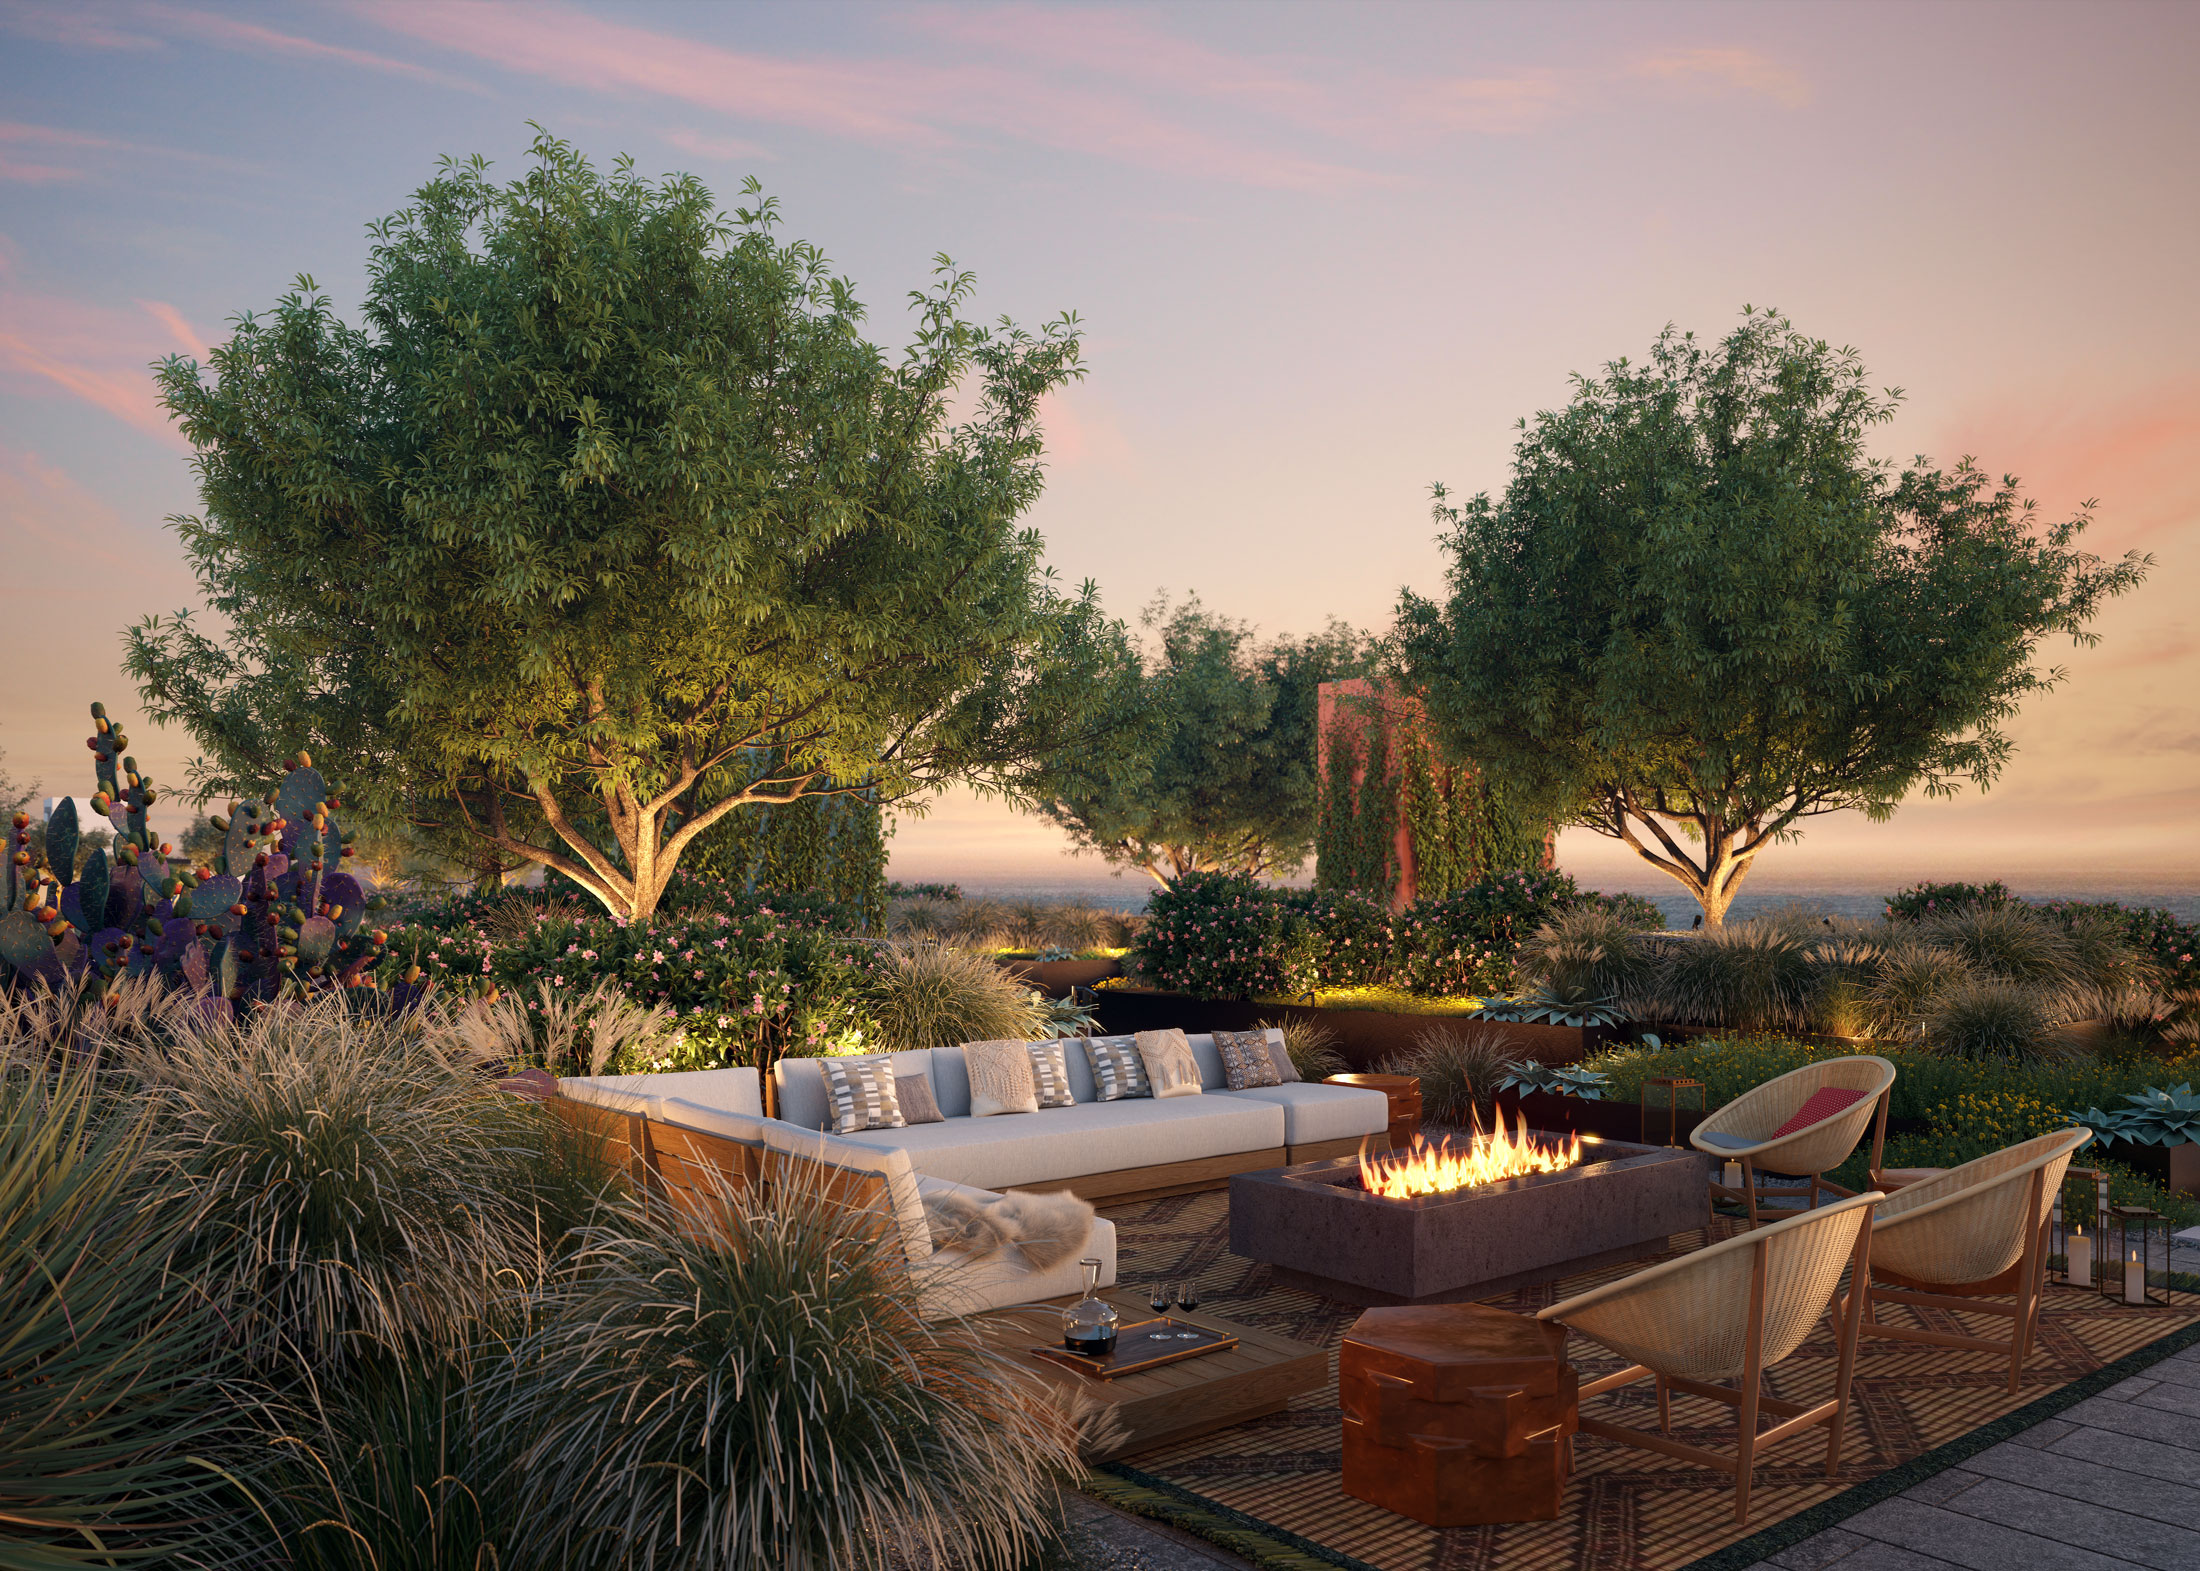 Architectural Rendering of the rooftop of The Park building project located in Santa Monica, California